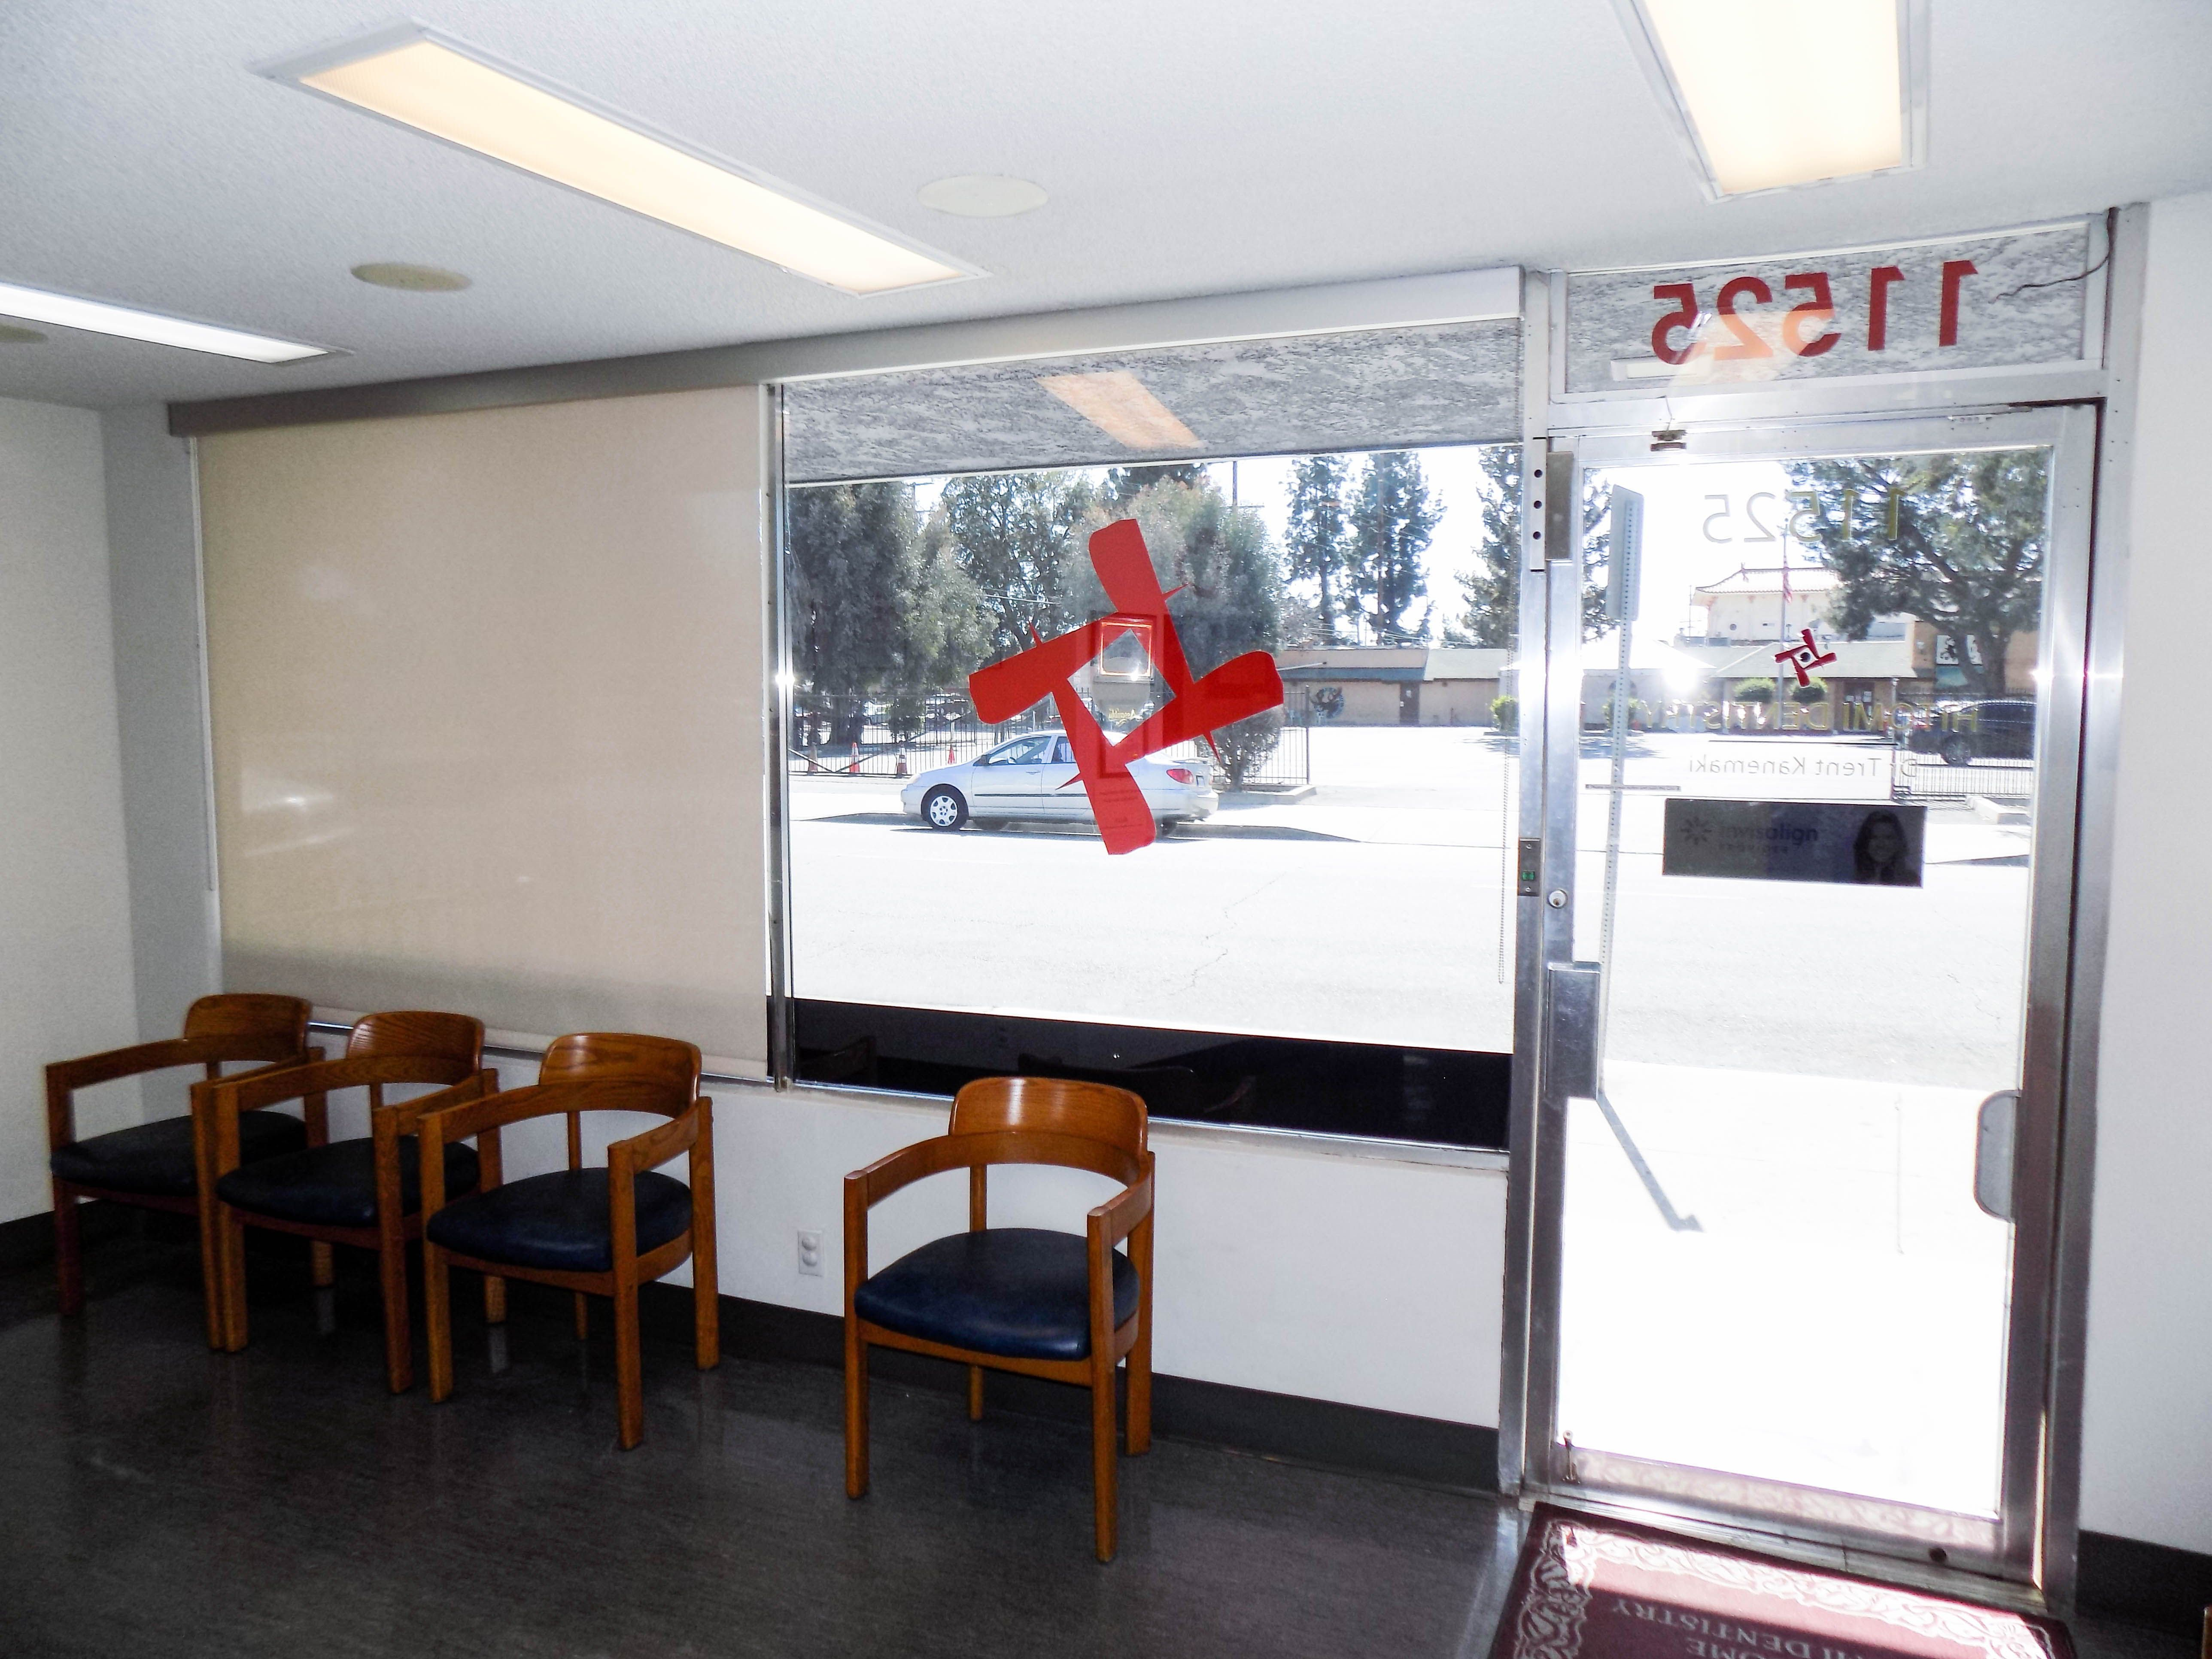 Our team installed indoor roller shades at hitomi dentistry in el